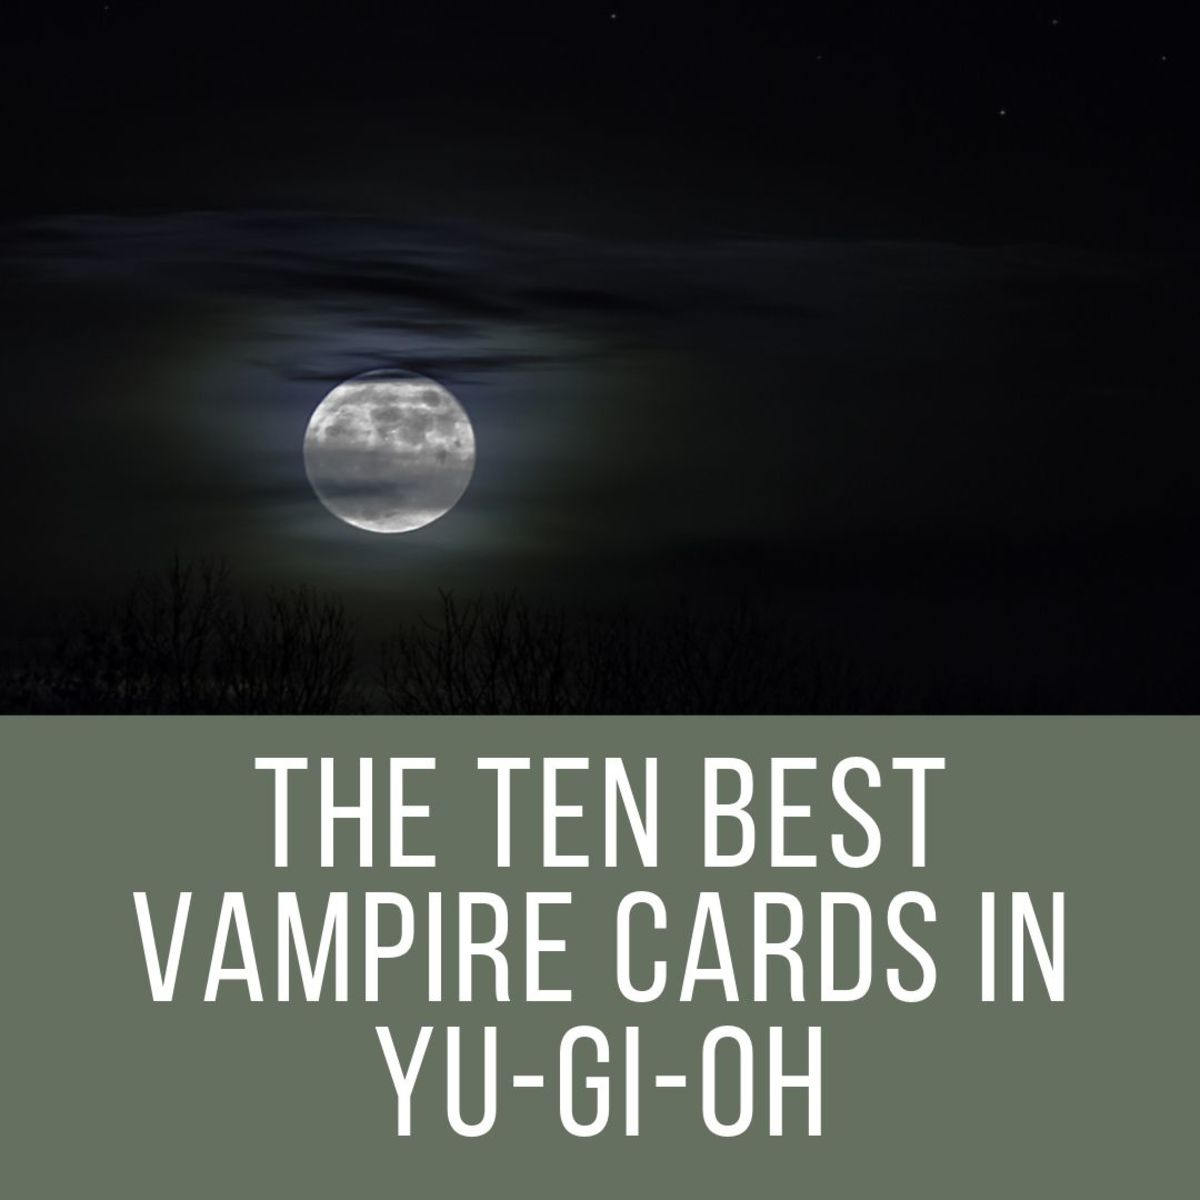 Top 10 Vampire Cards in Yu-Gi-Oh